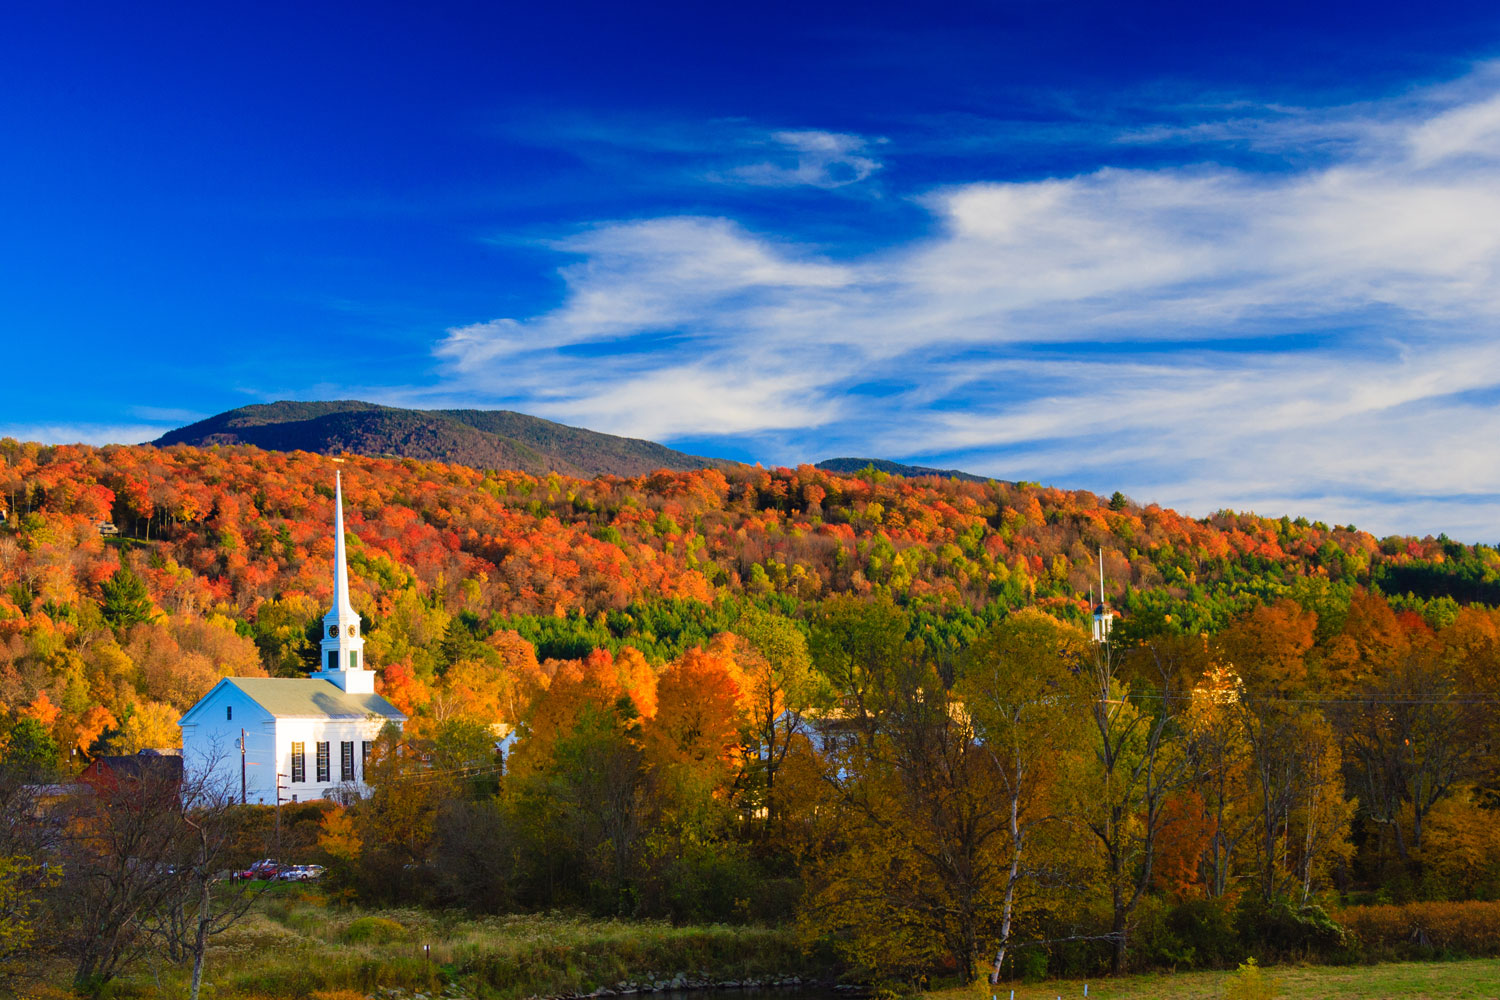 Follow the Fall Colors to Stowe for the Weekend